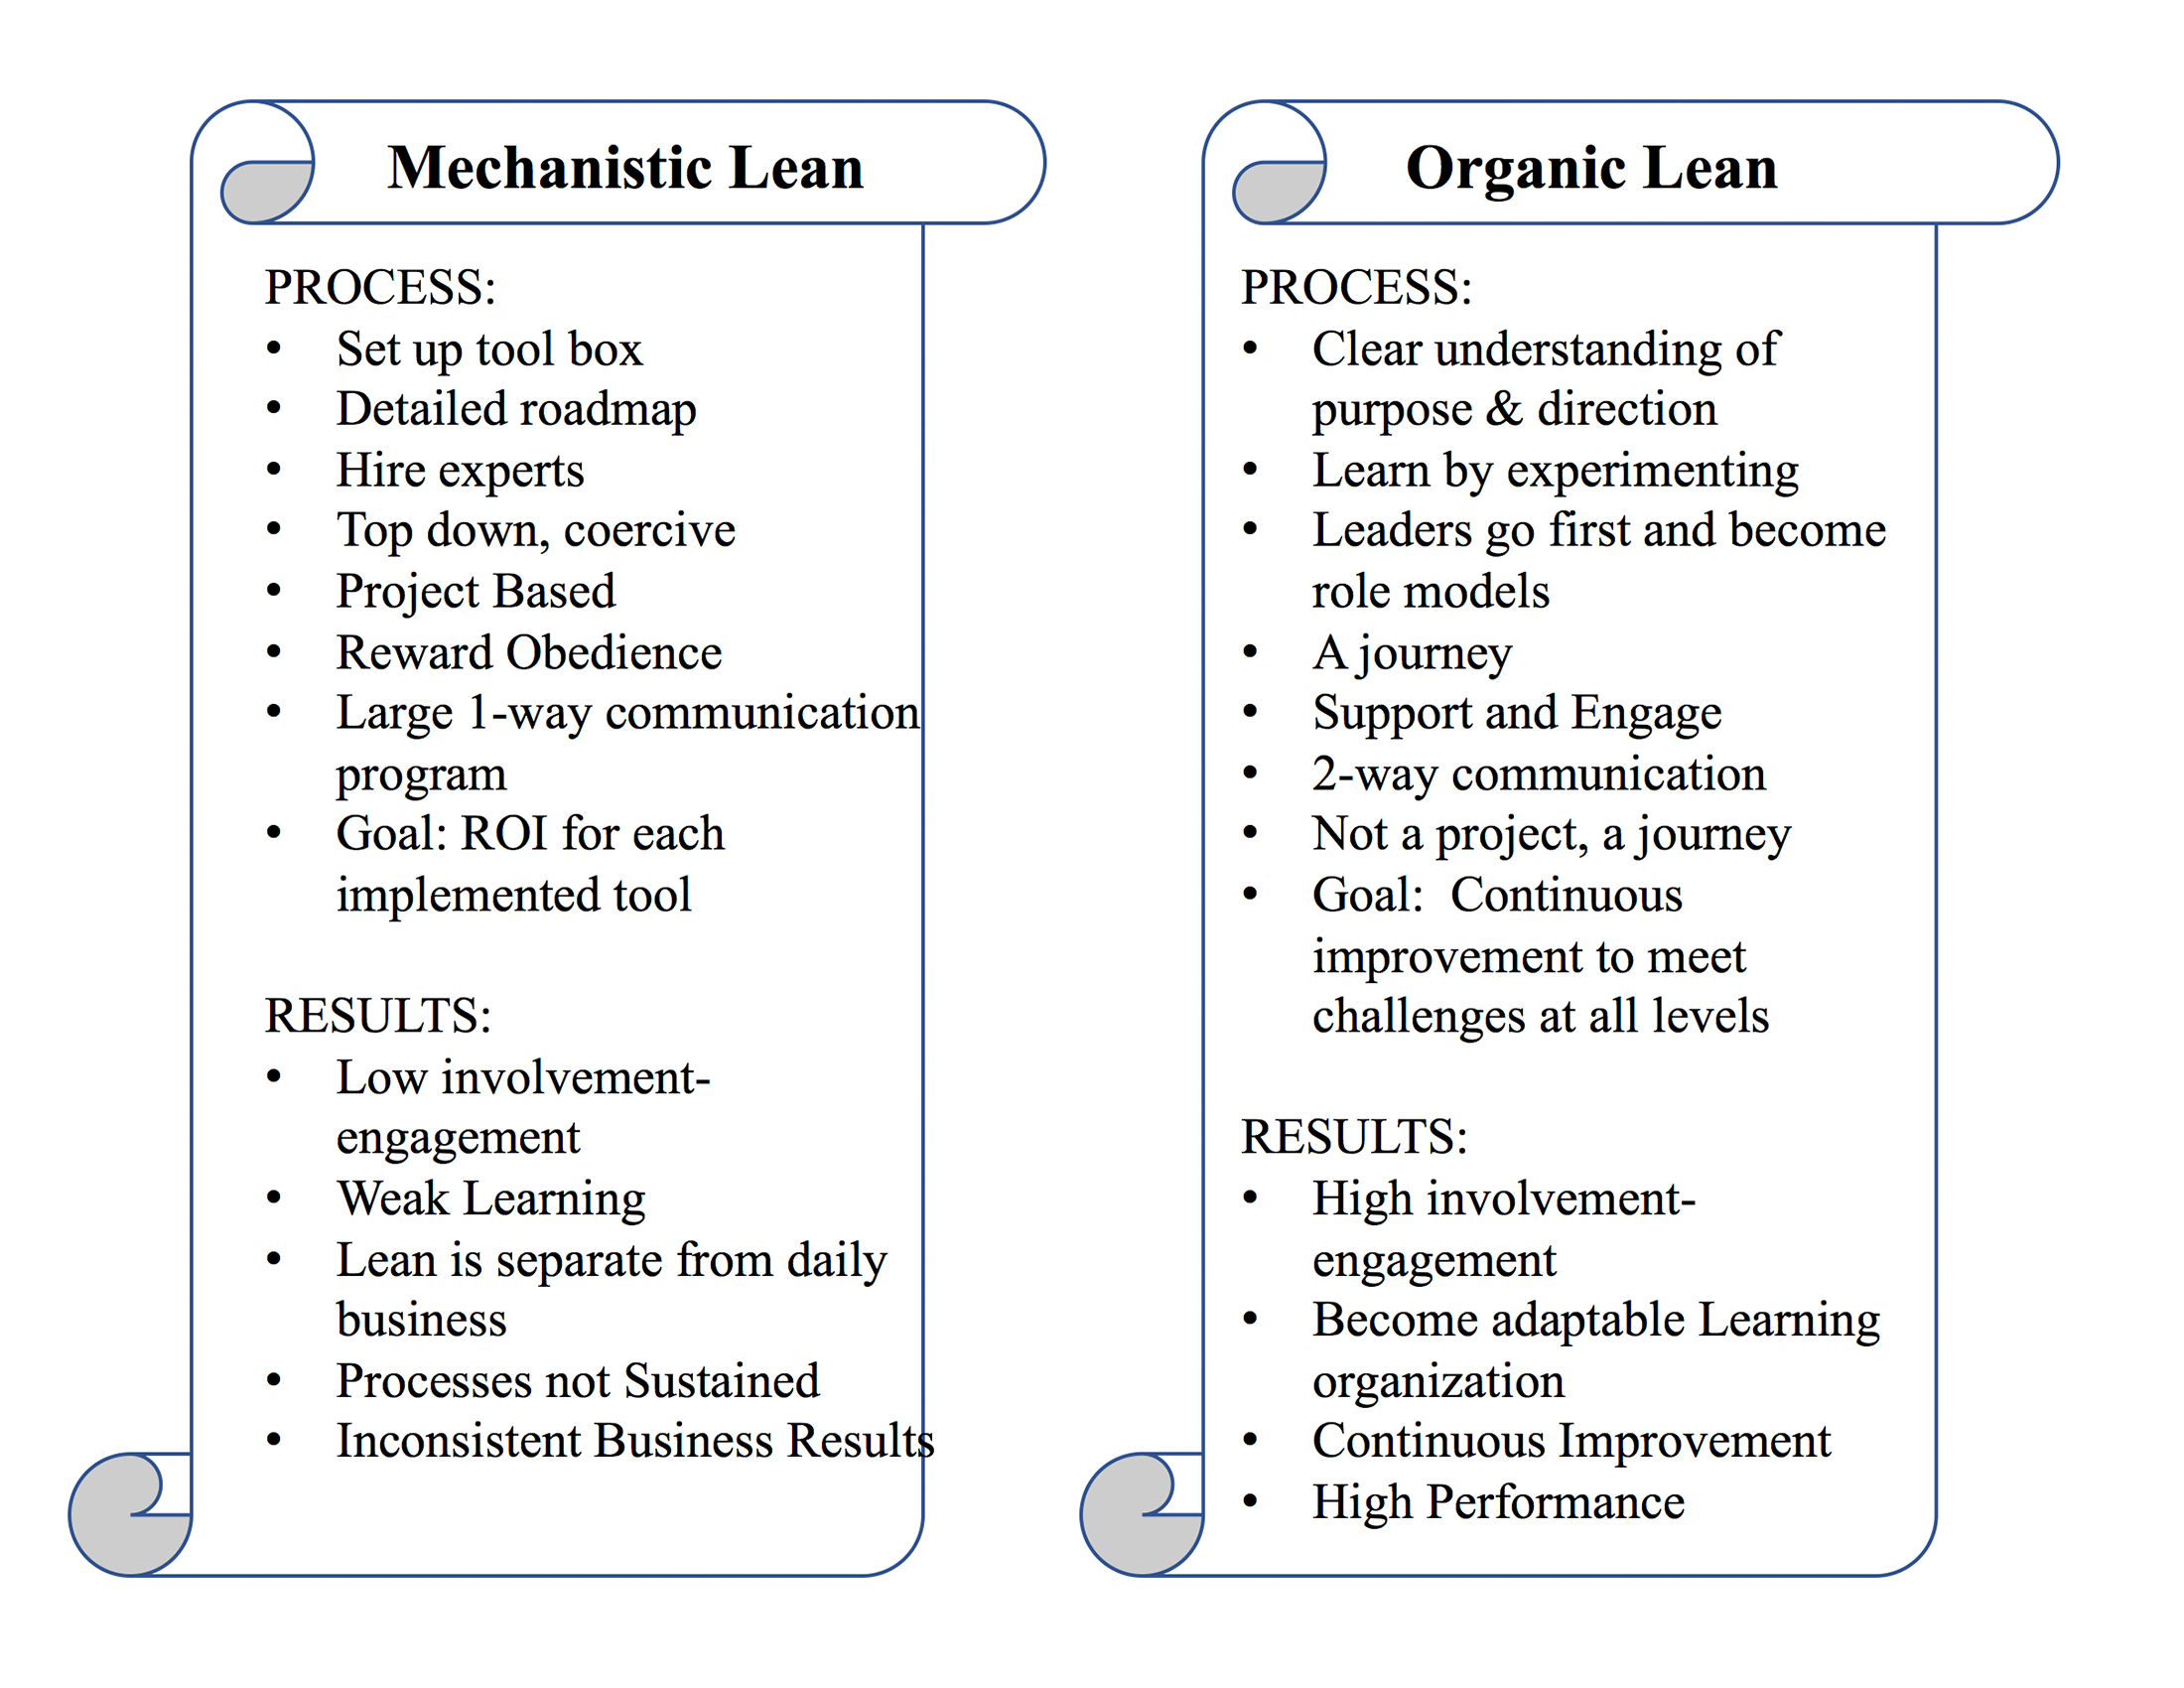 Are You Deploying Lean Mechanistically–or Organically?